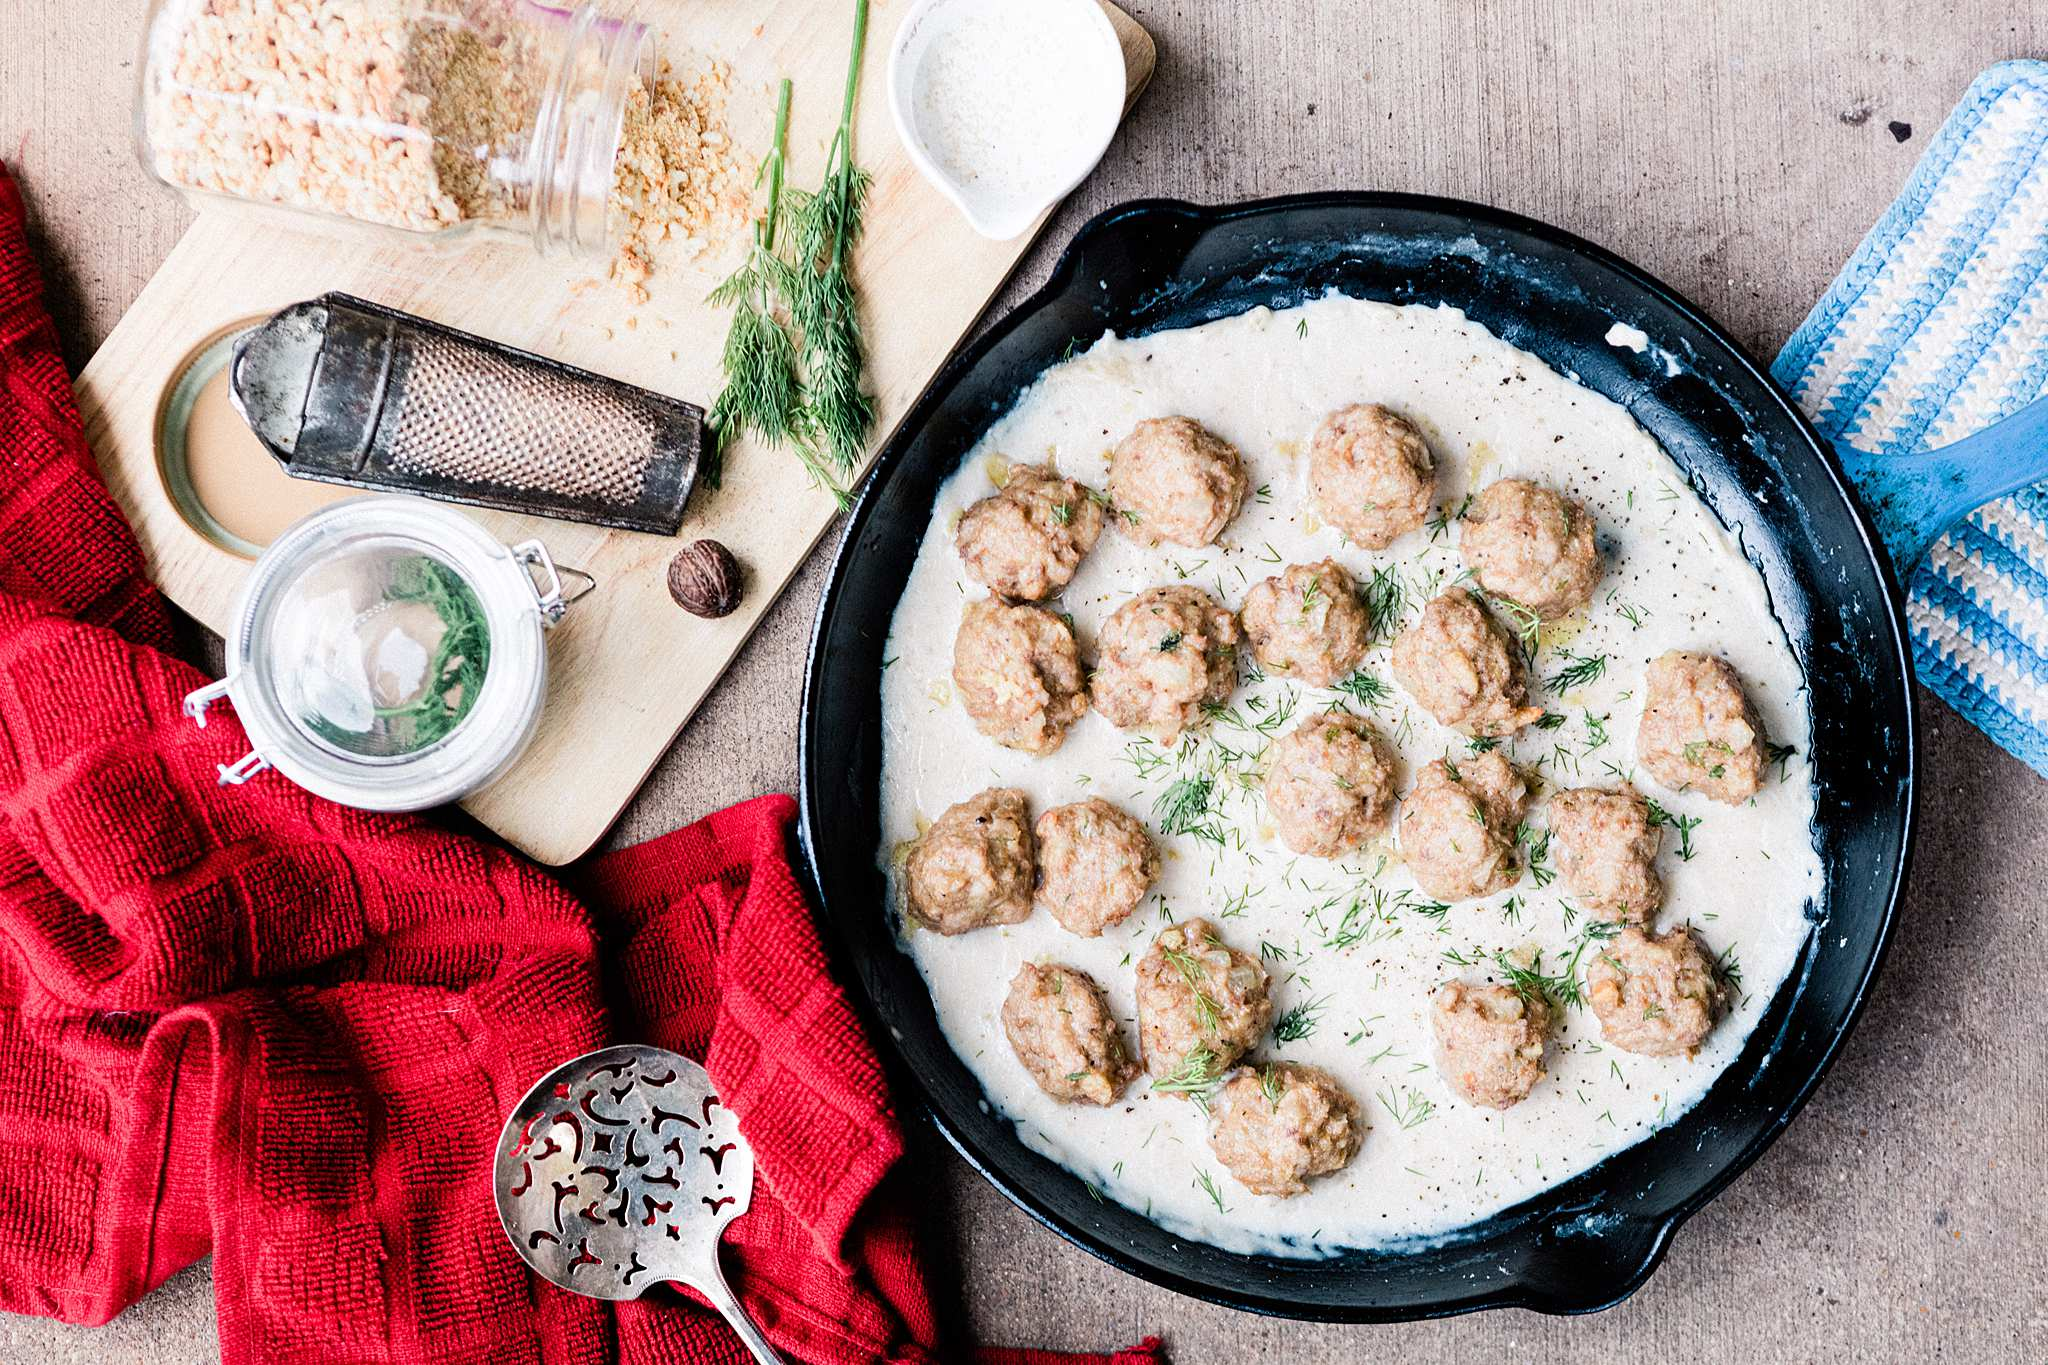 Swedish Meatballs (Kjottboller) - Let's Taco Bout It Blog